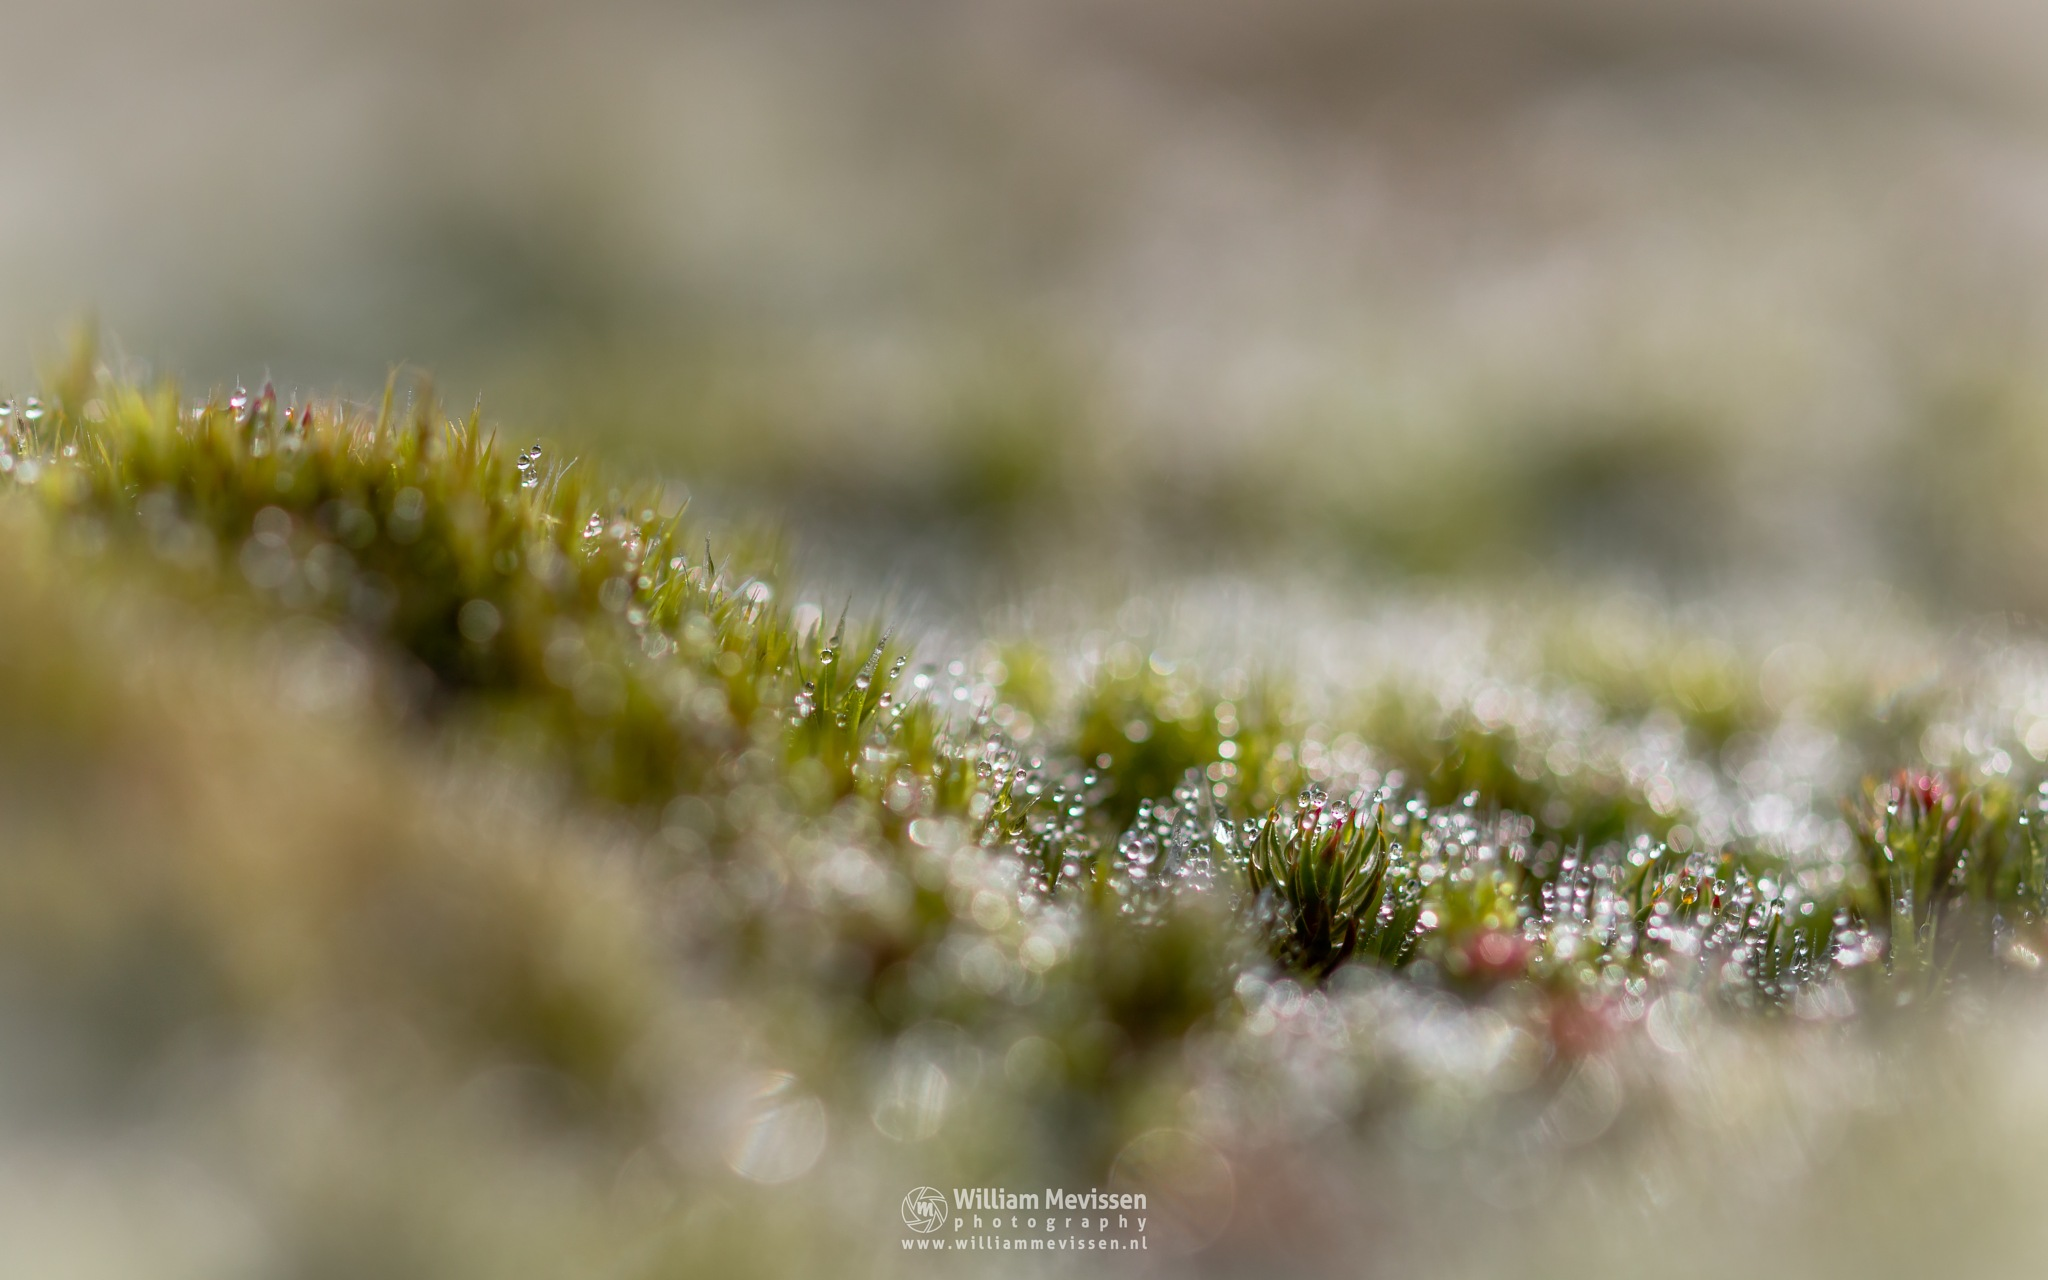 Moss & Bokeh by William Mevissen